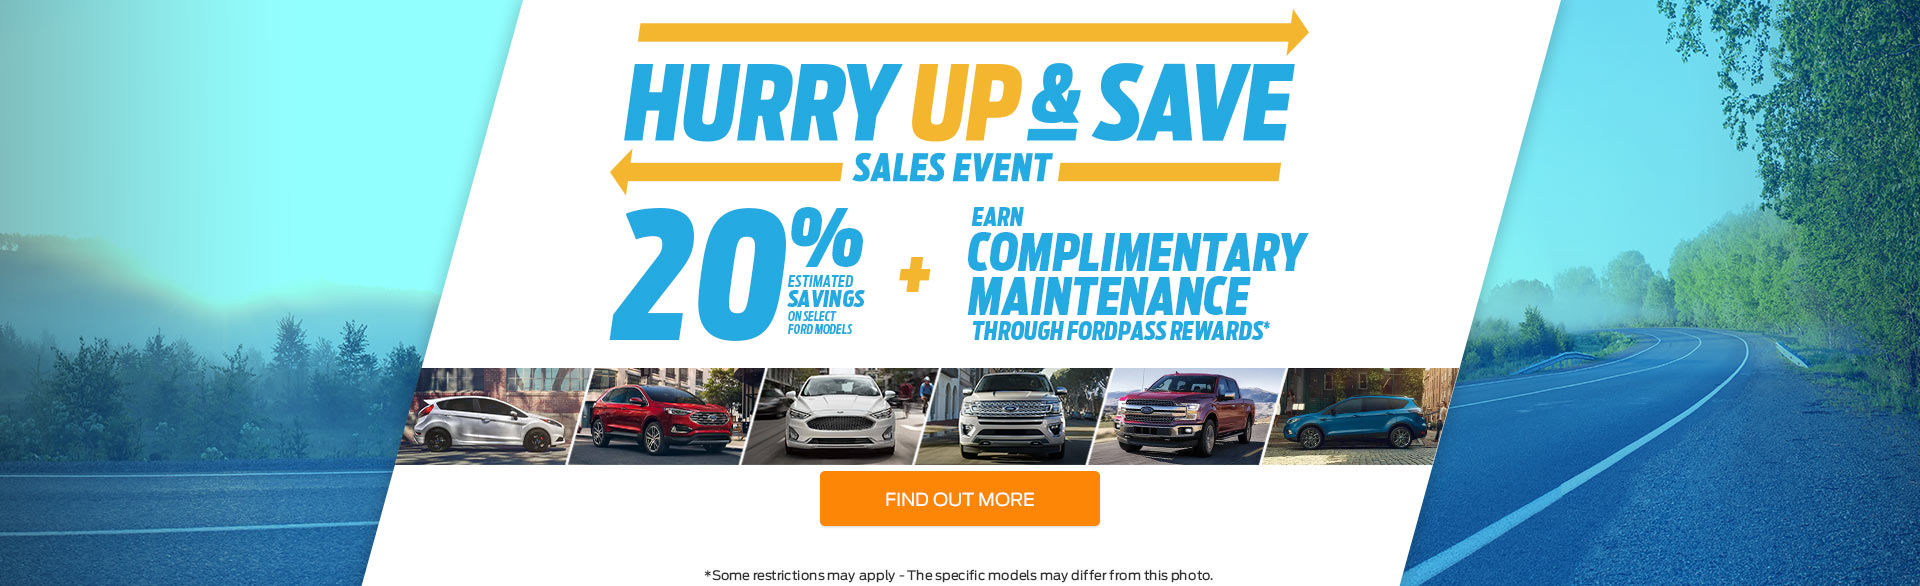 Hurry Up & Save Sales Event